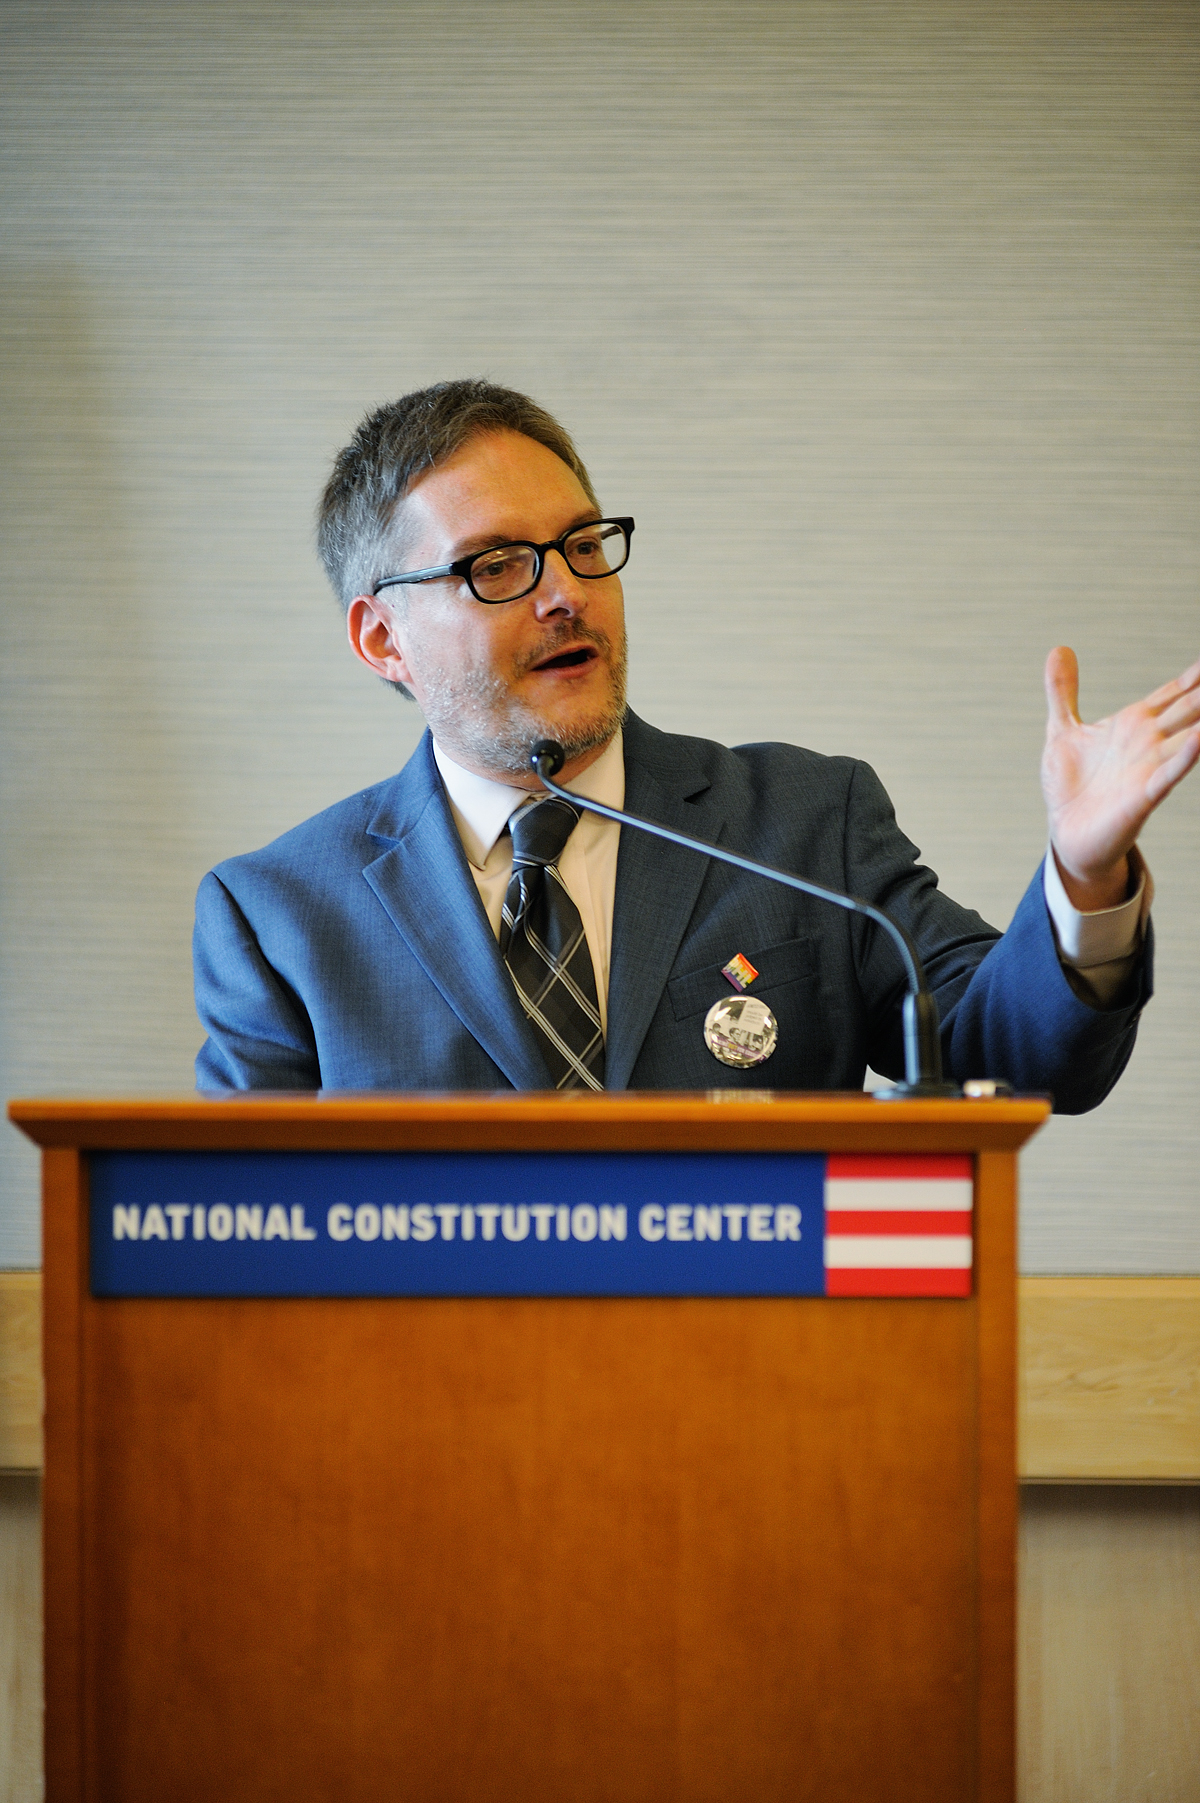 Chris Bartlett, Executive Director, William Way LGBT Community Center. Press Conference for: Speaking Out for Equality: the Constitution, Gay Rights, and the Supreme Court. National Constitution Center March 10, 2015